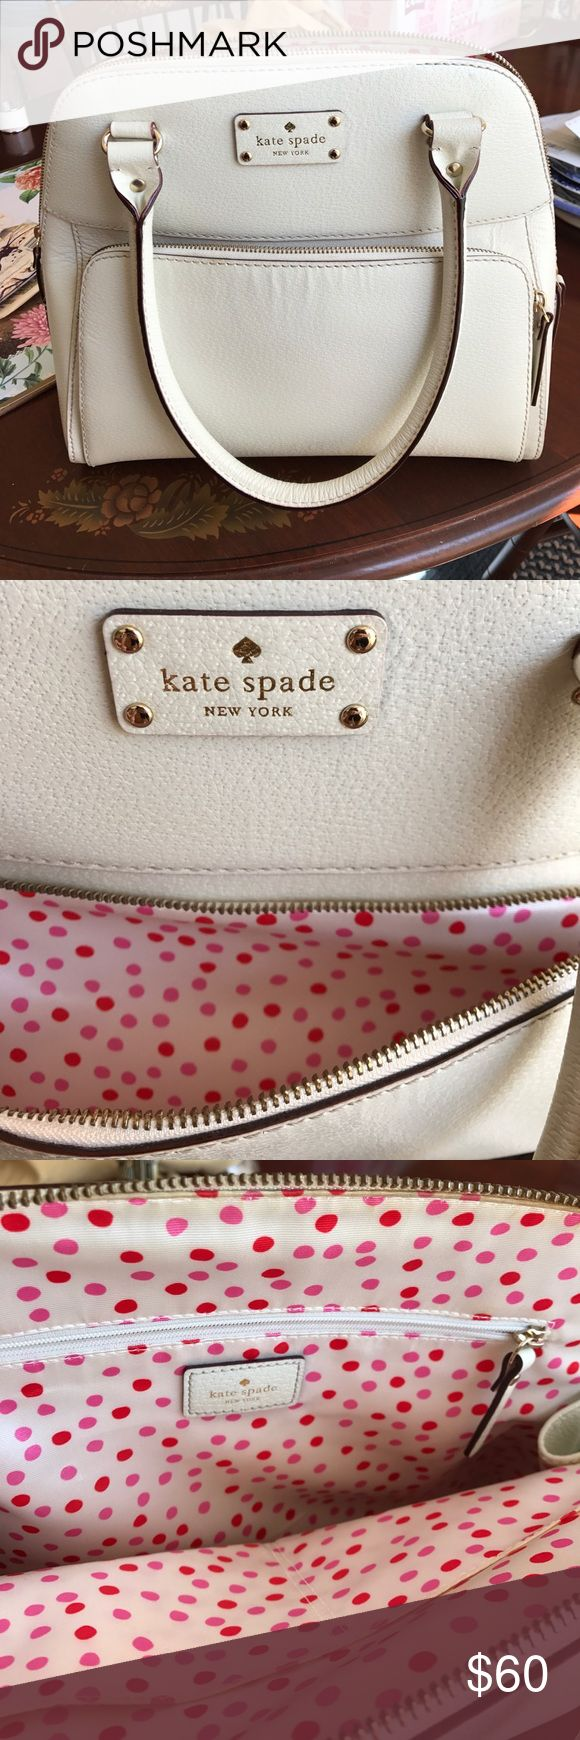 Kate Spade Bowler Purse Satchel Like new condition with cute dot lining! Interior zip pocket and exterior pocket- white leather kate spade Bags